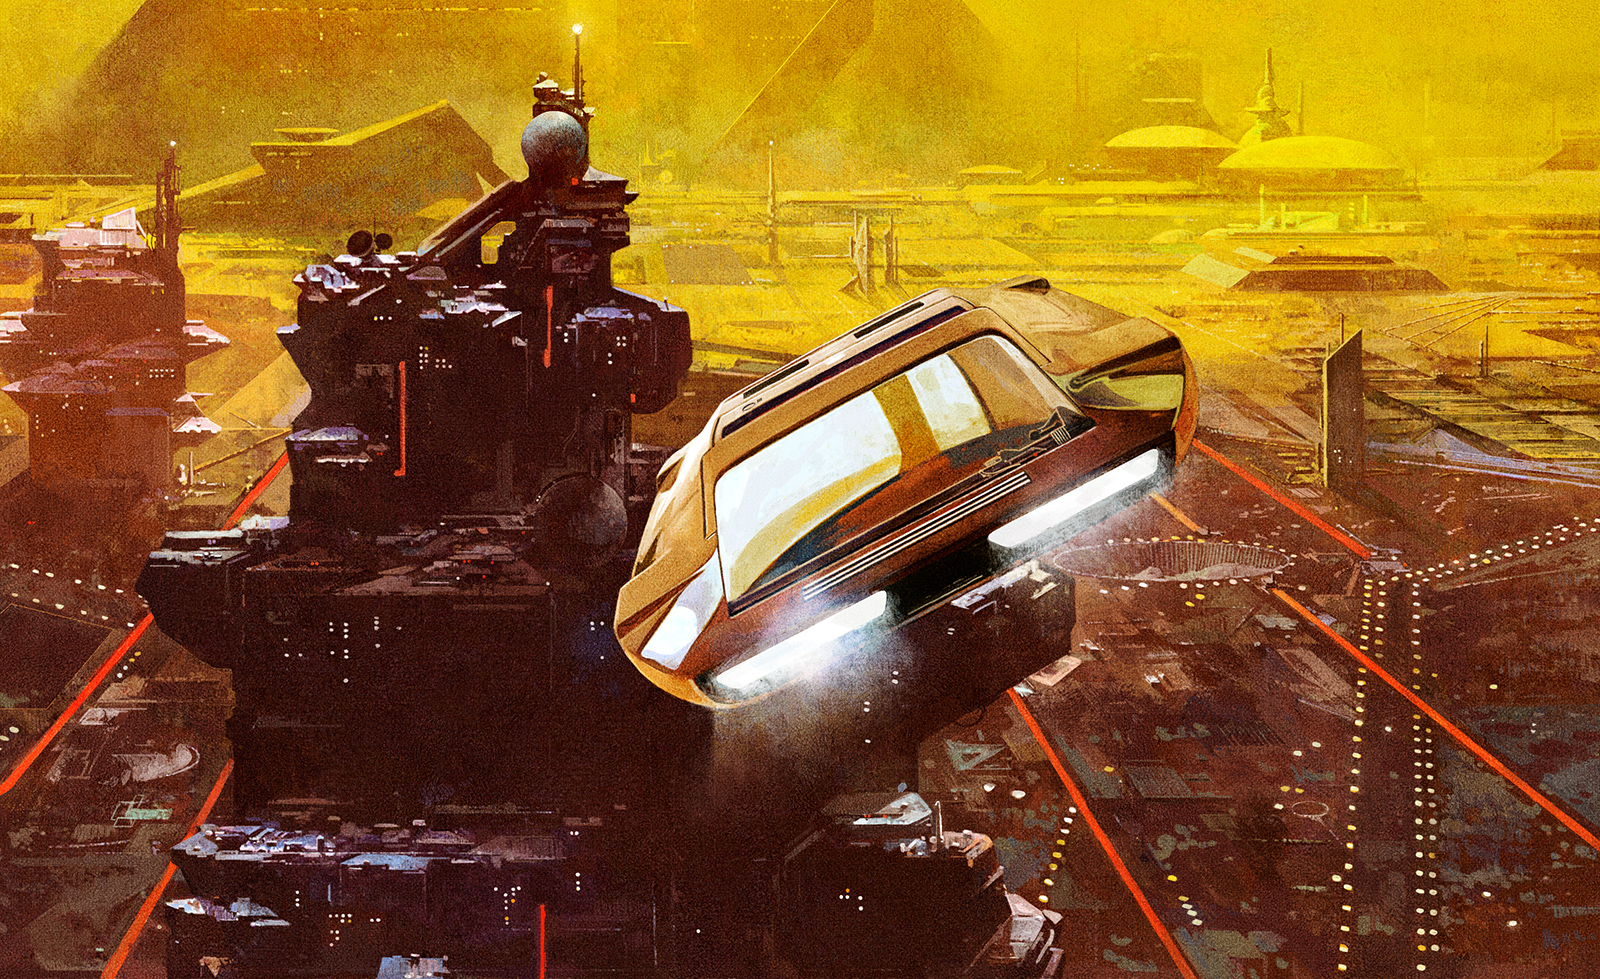 Dan McPharlin - Moments Lost (detail)